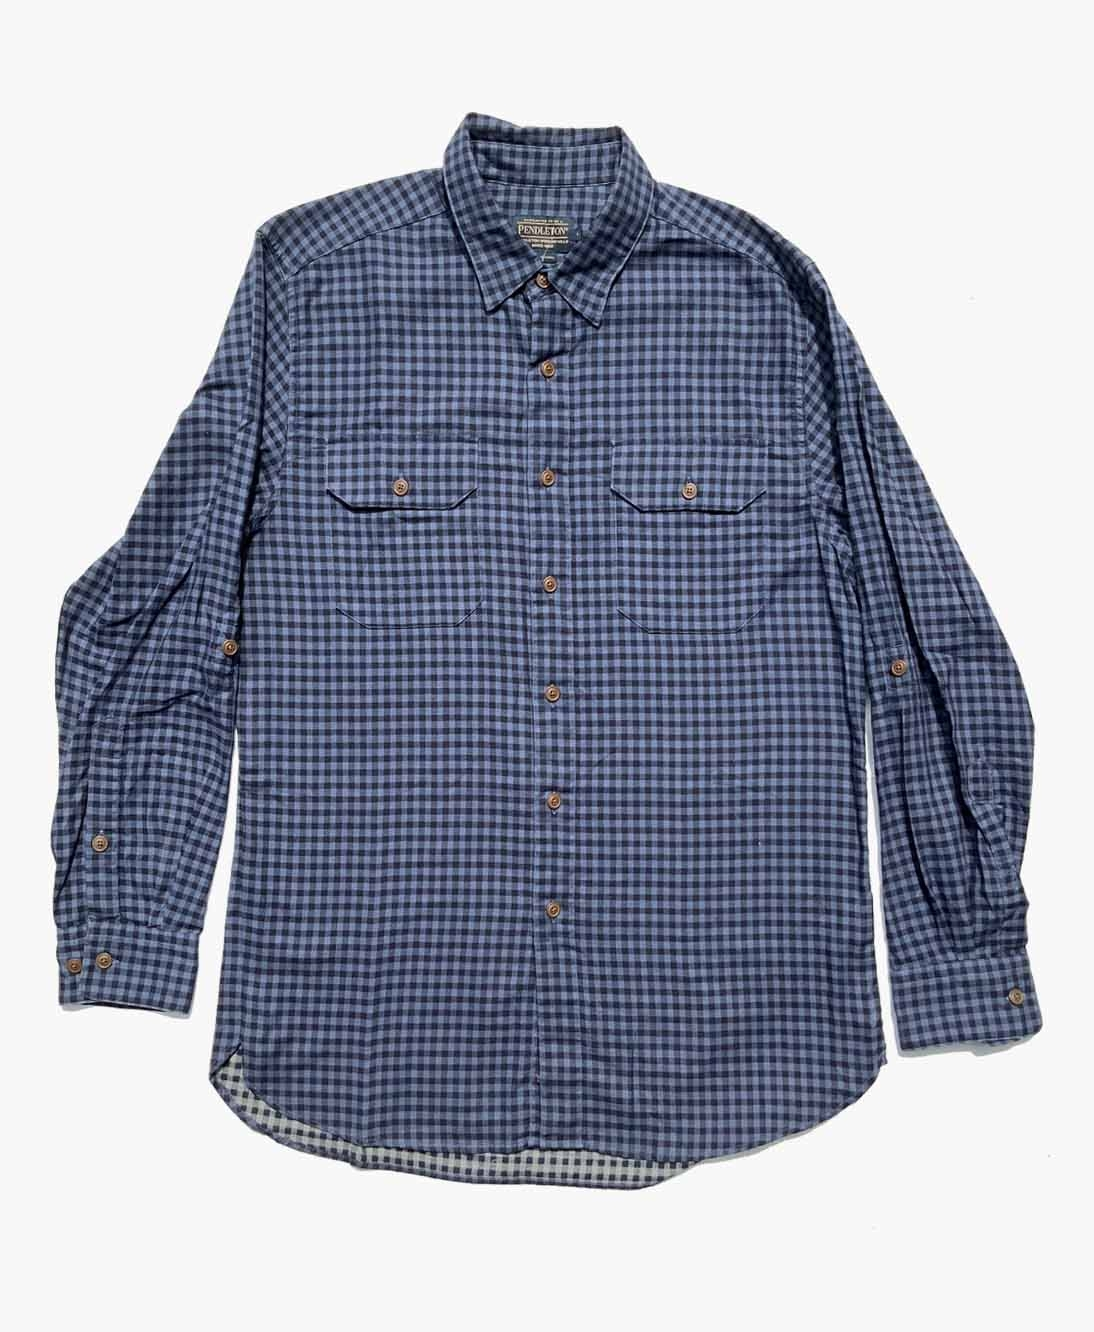 Fitter Fairbanks Regular Fit Shirt